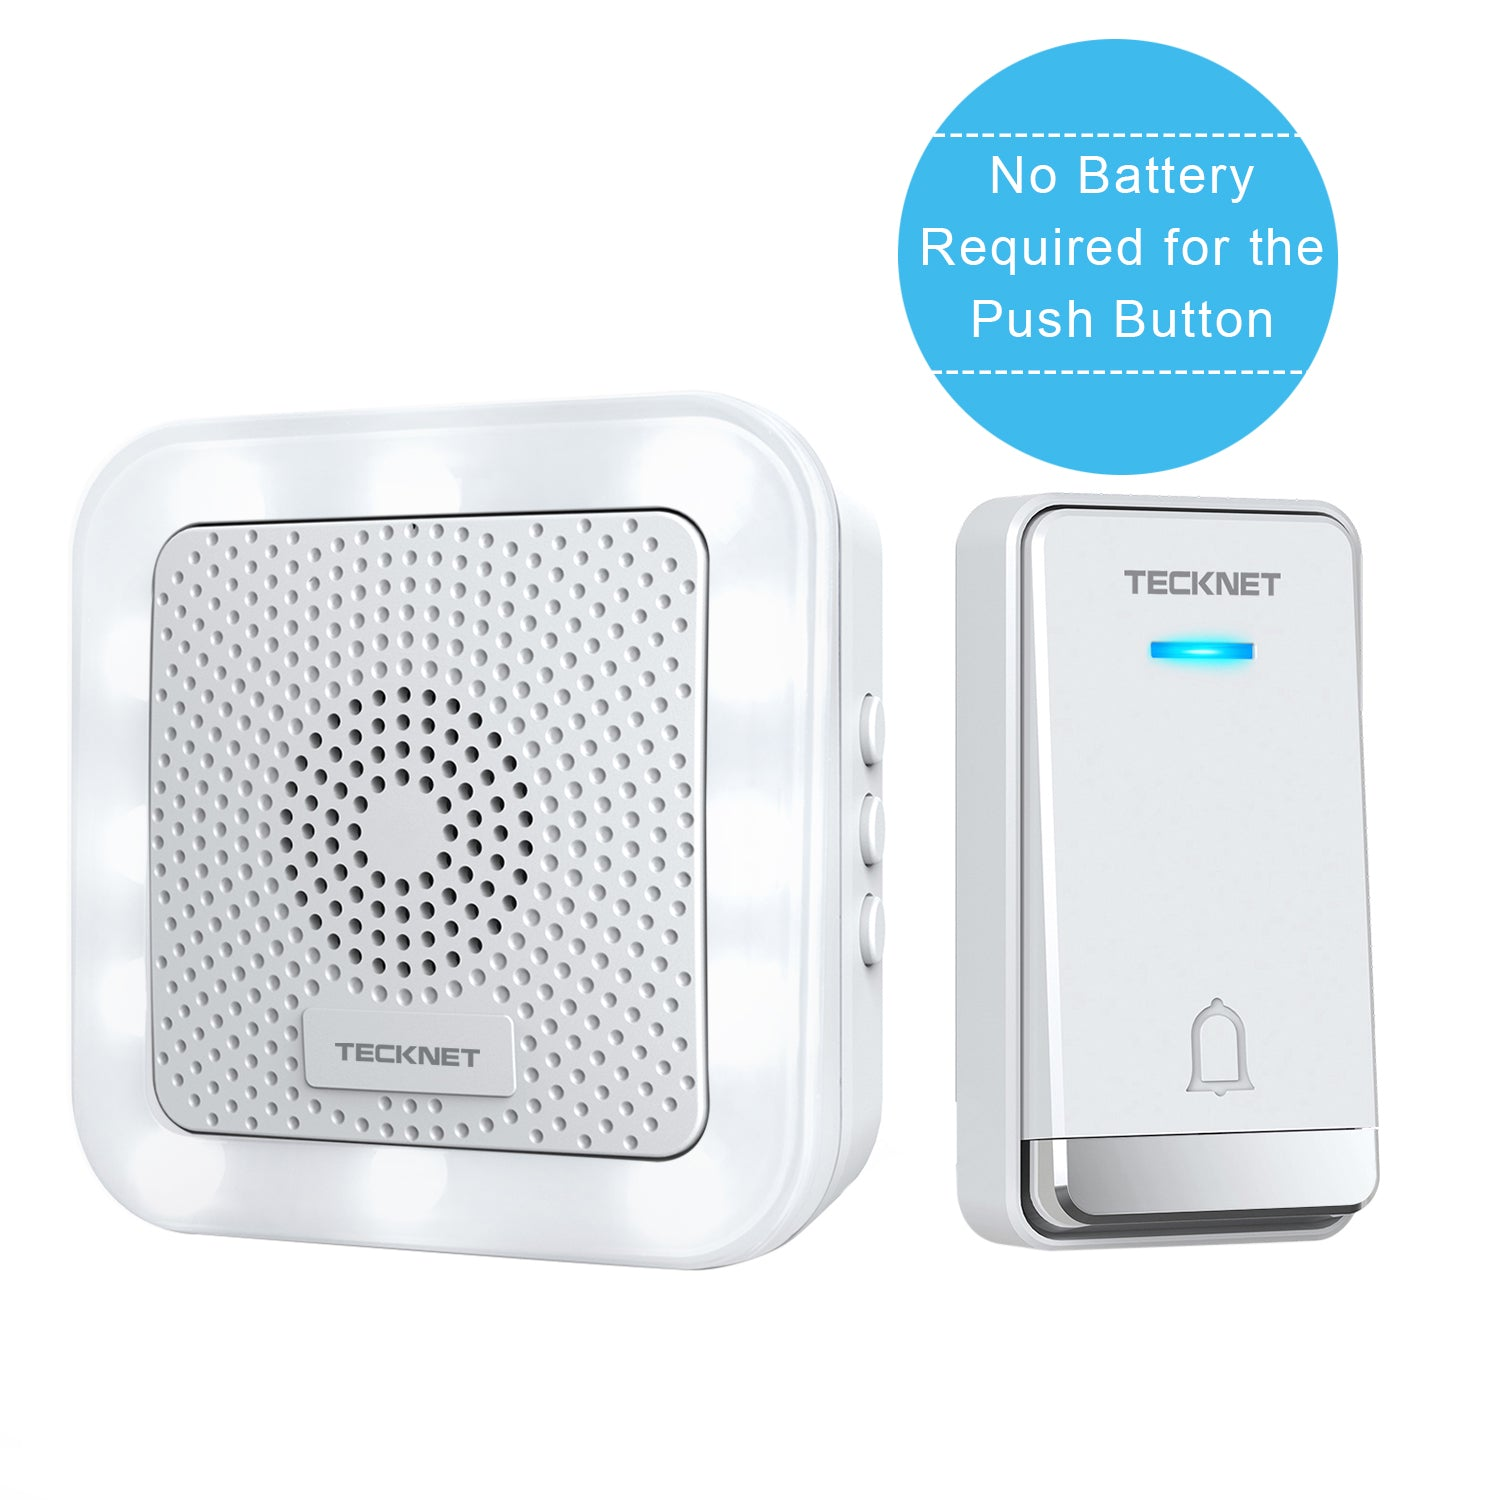 TECKNET LED Night Light Wall Plug-in Cordless Wireless Doorbell, UK Plug